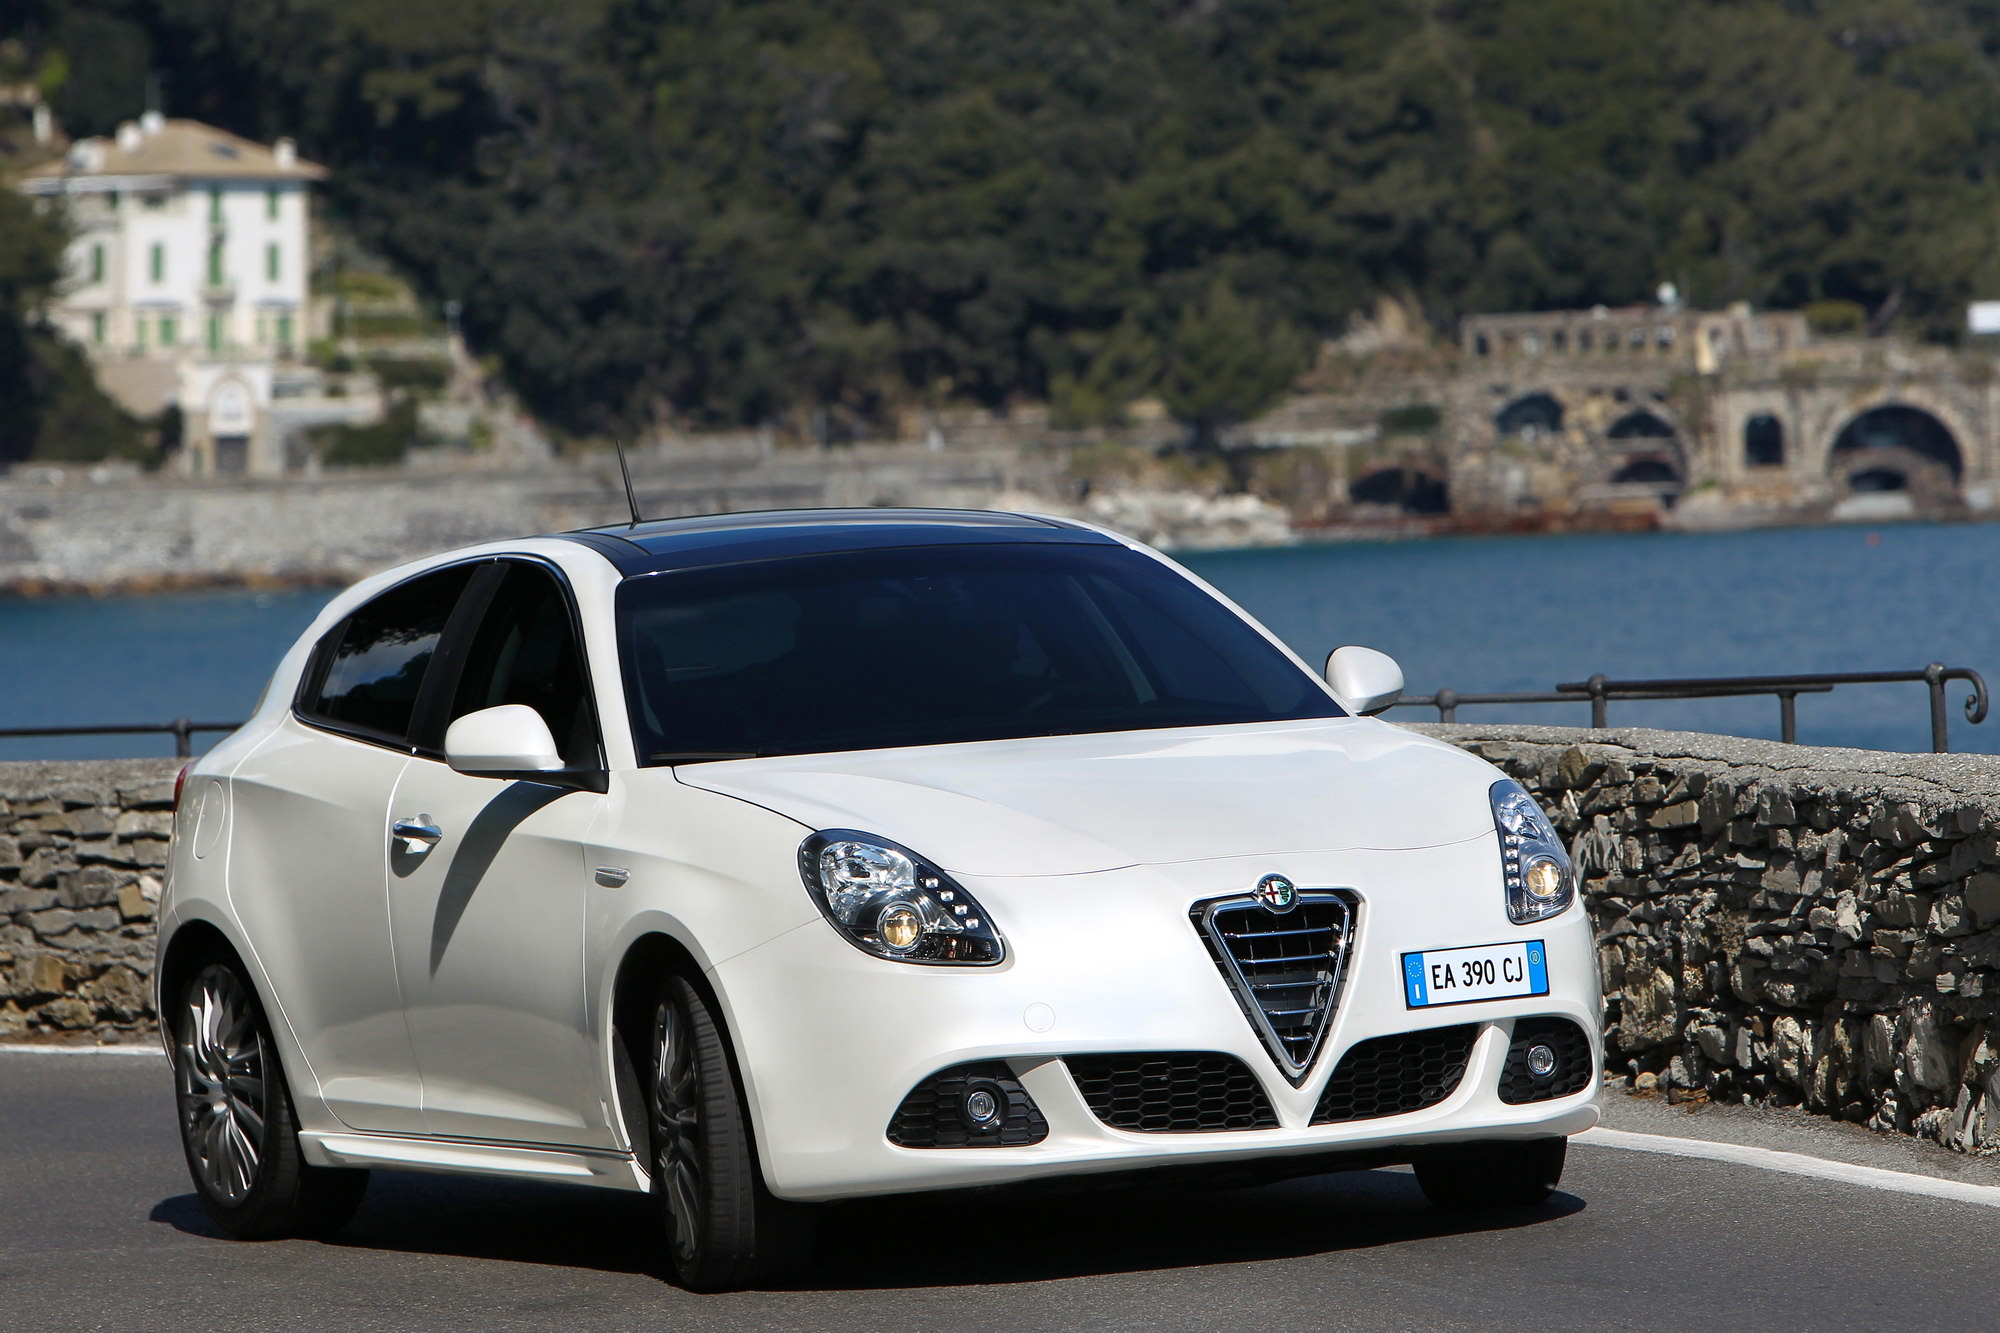 Even if all eyes are on the new cars being unveiled at the los angeles auto show the italian automaker alfa romeo has decided that this would be the